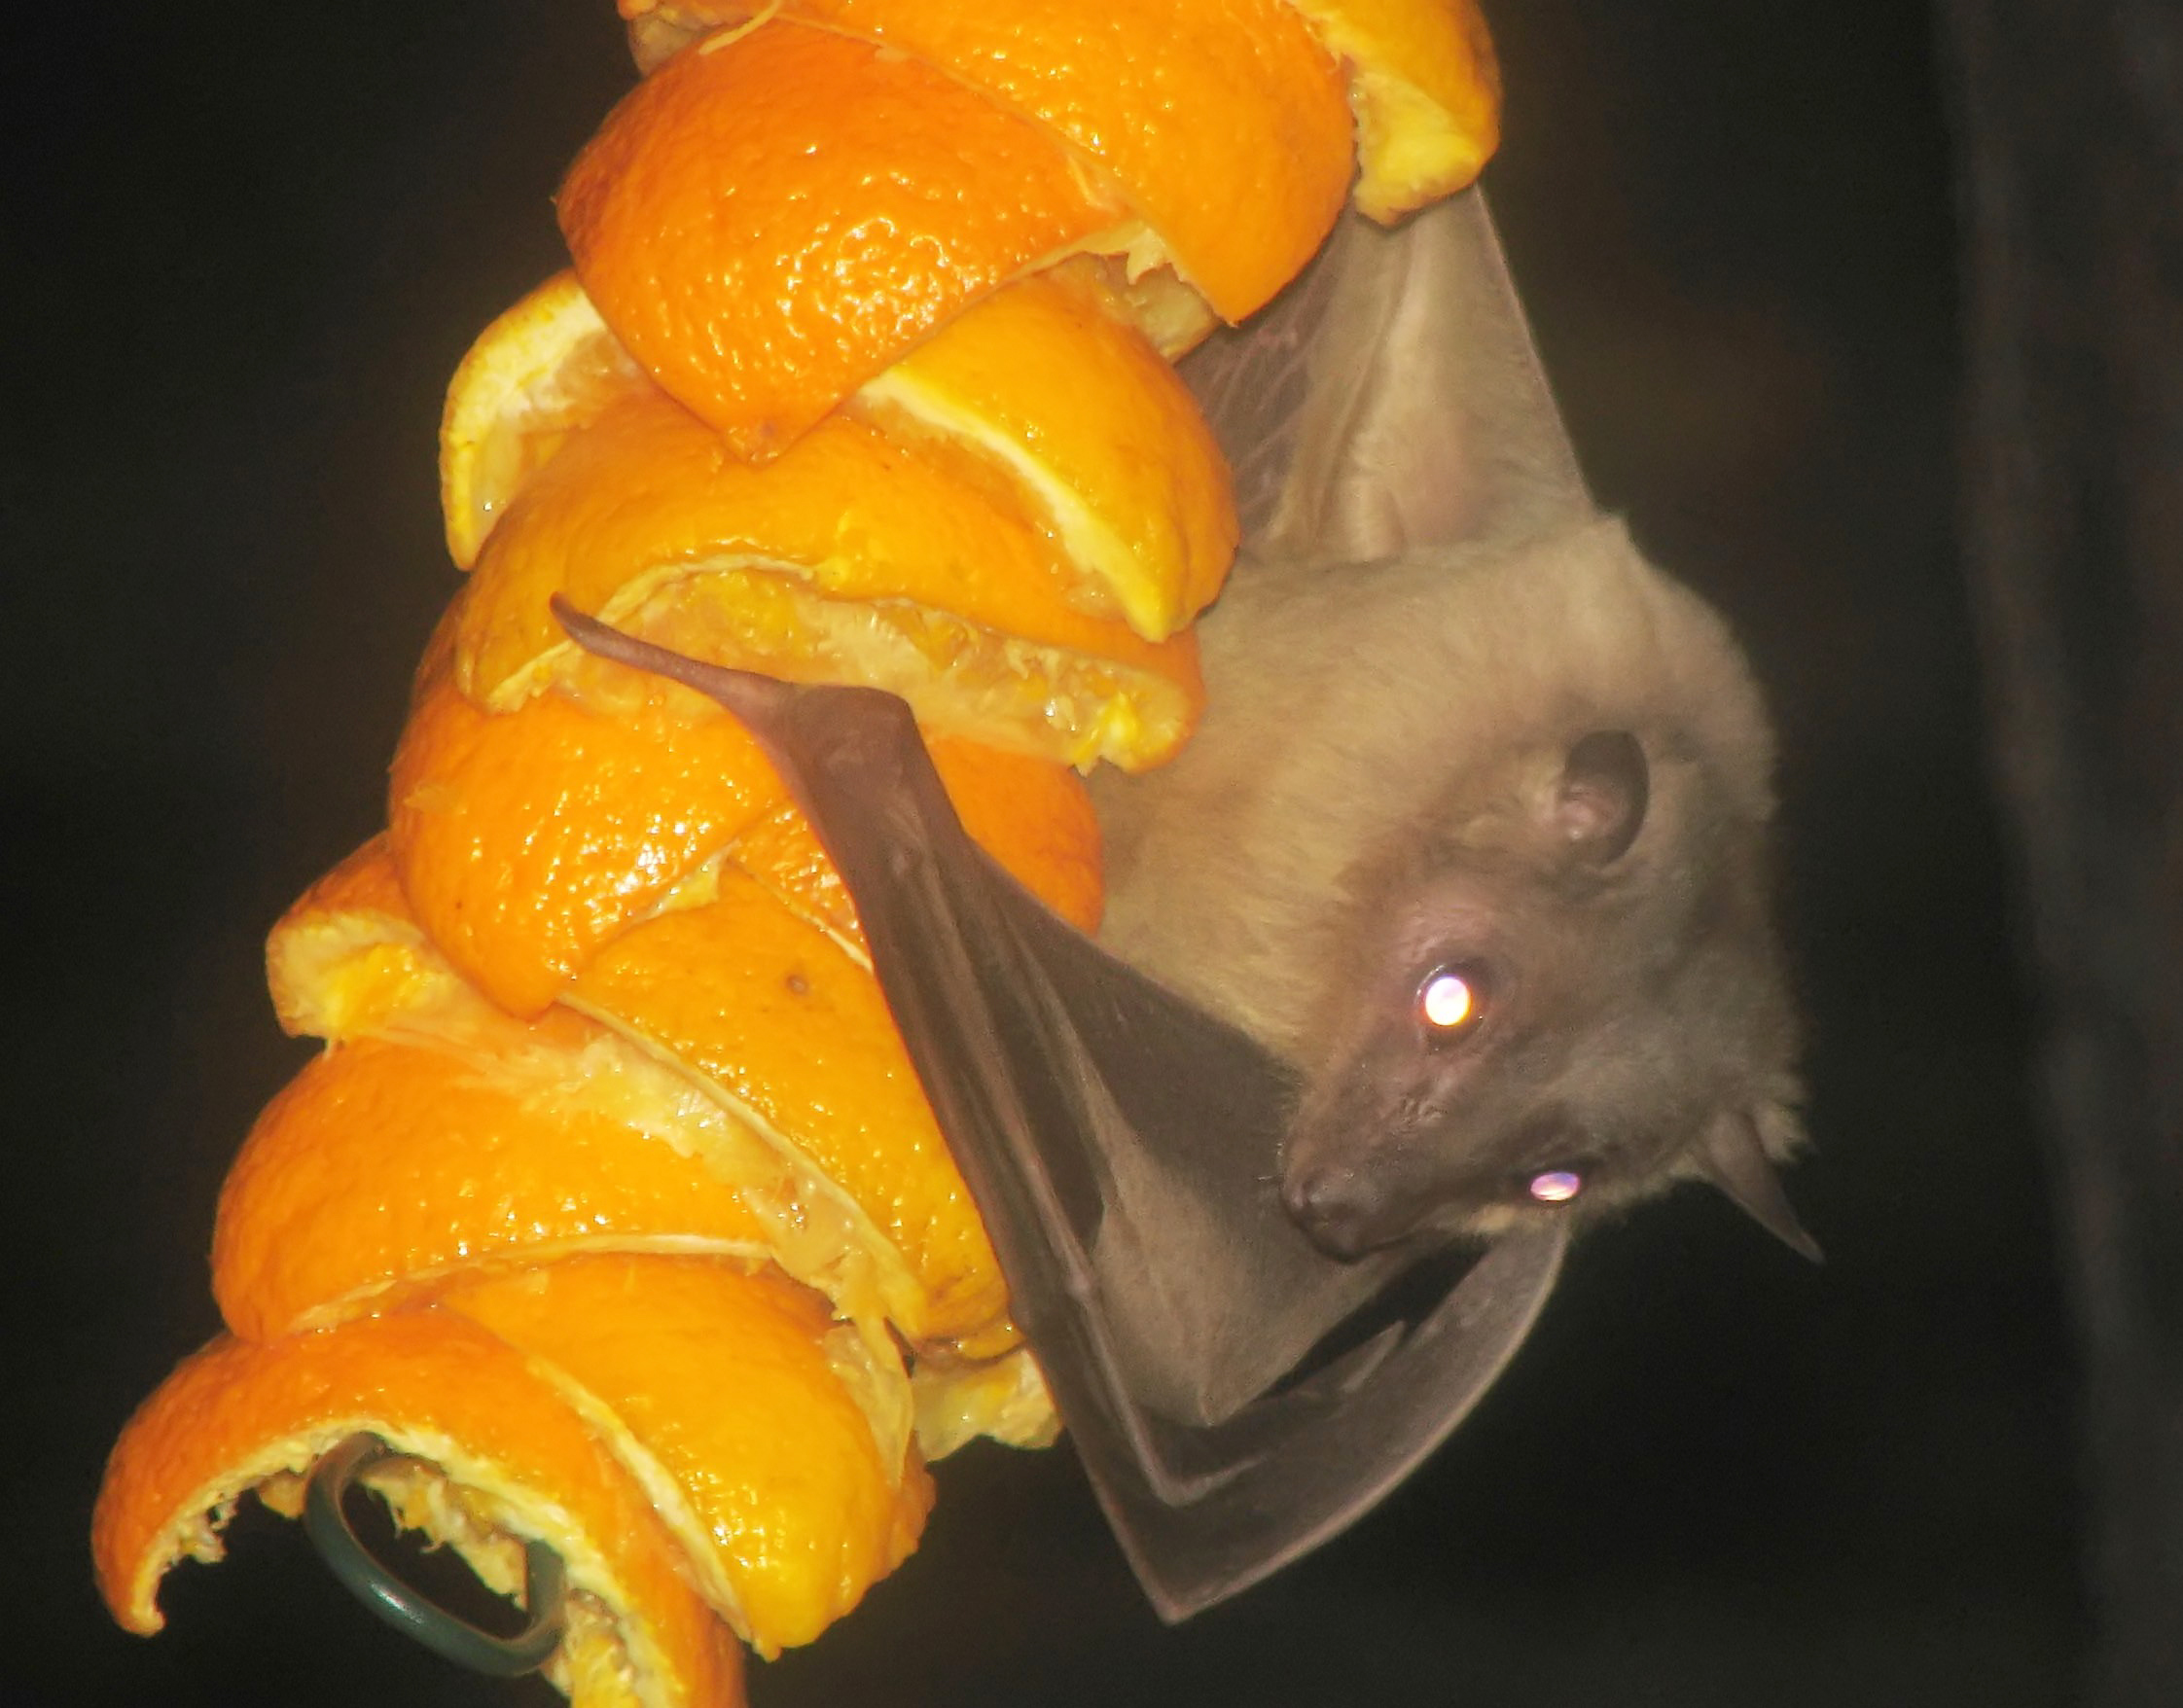 Egyptian fruitbat arp high HD Wallpaper